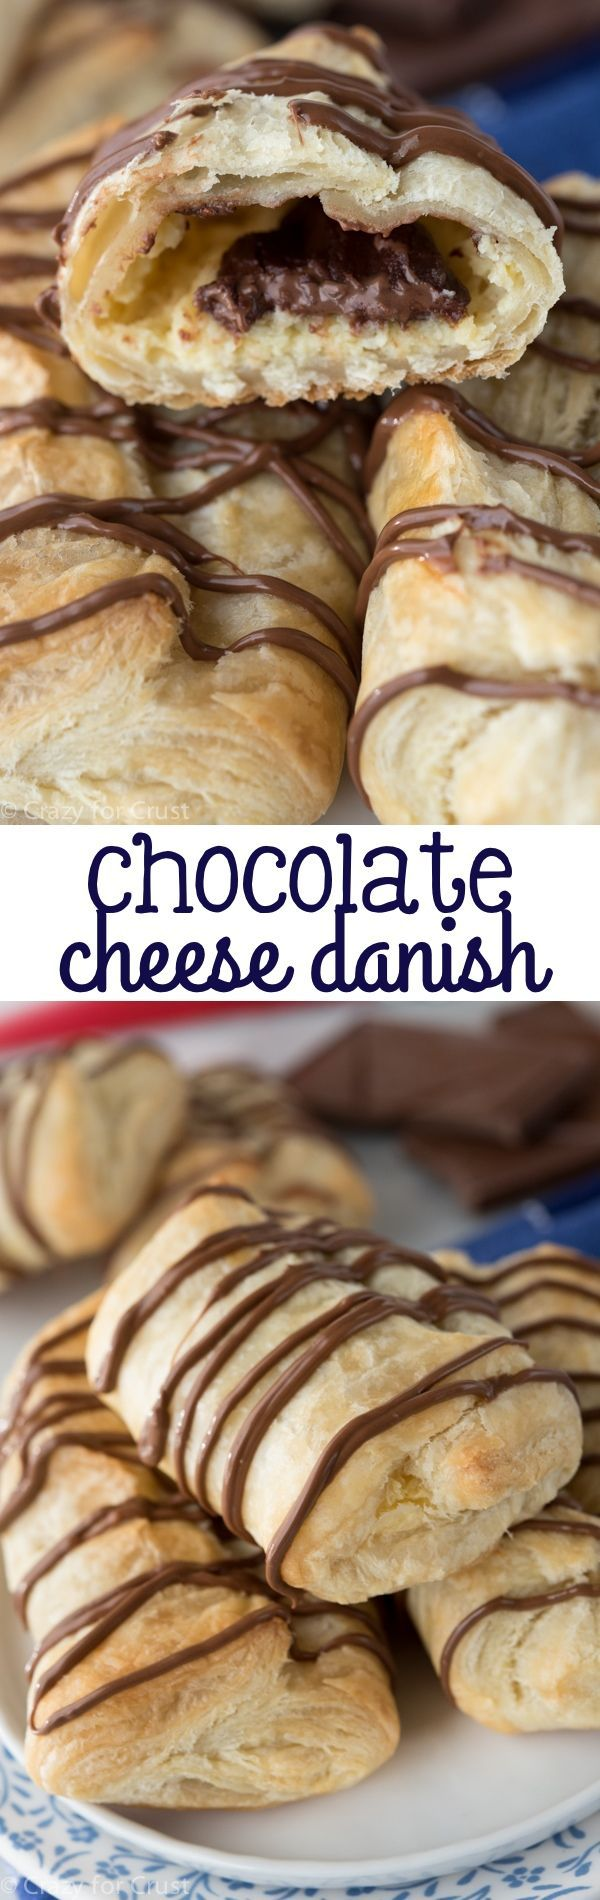 Chocolate Cheese Danish - a mashup of a cheese danish and a chocolate croissant! Have both flavors in one easy breakfast pastry recipe.